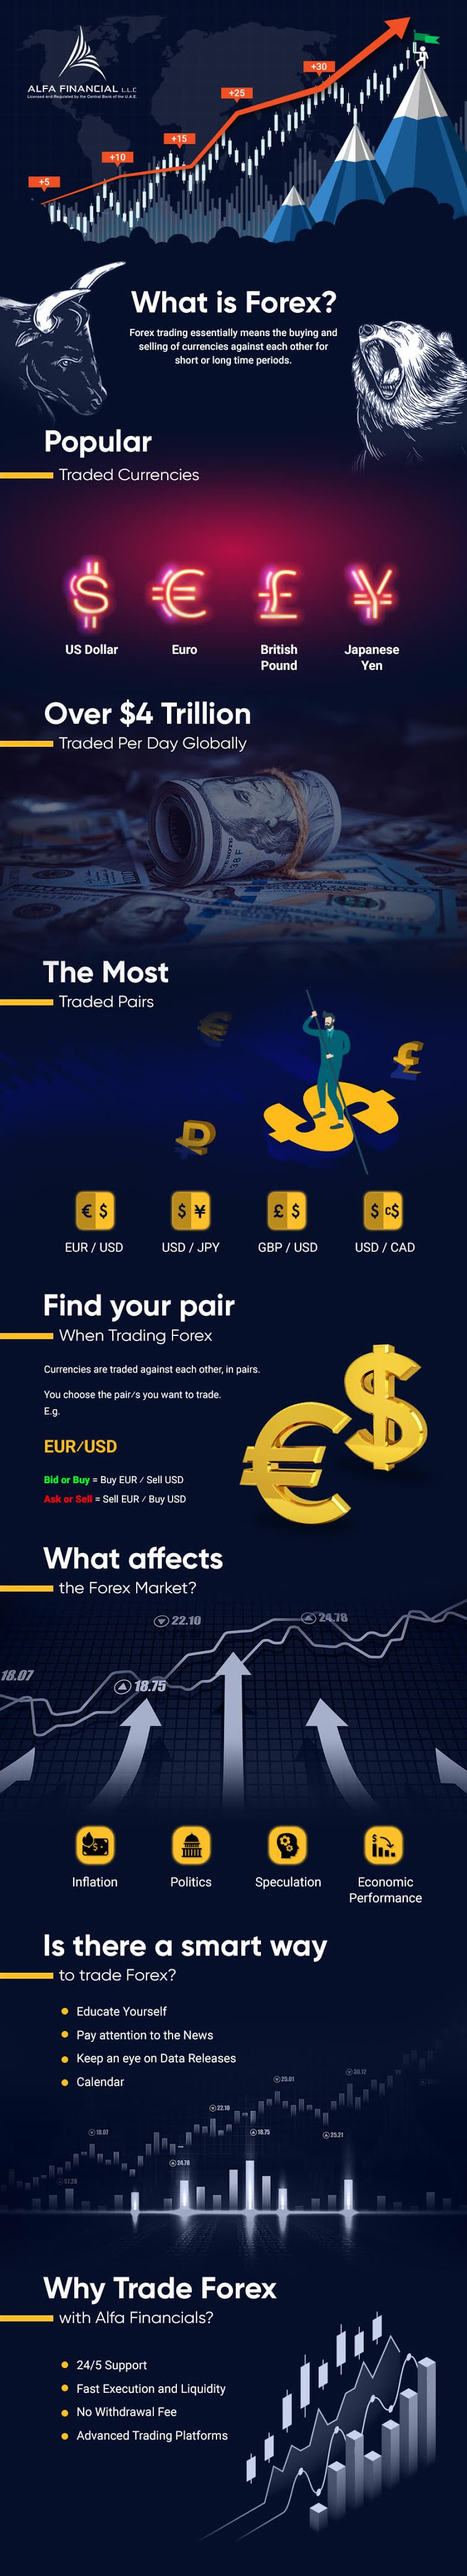 What Is Forex? #infographic